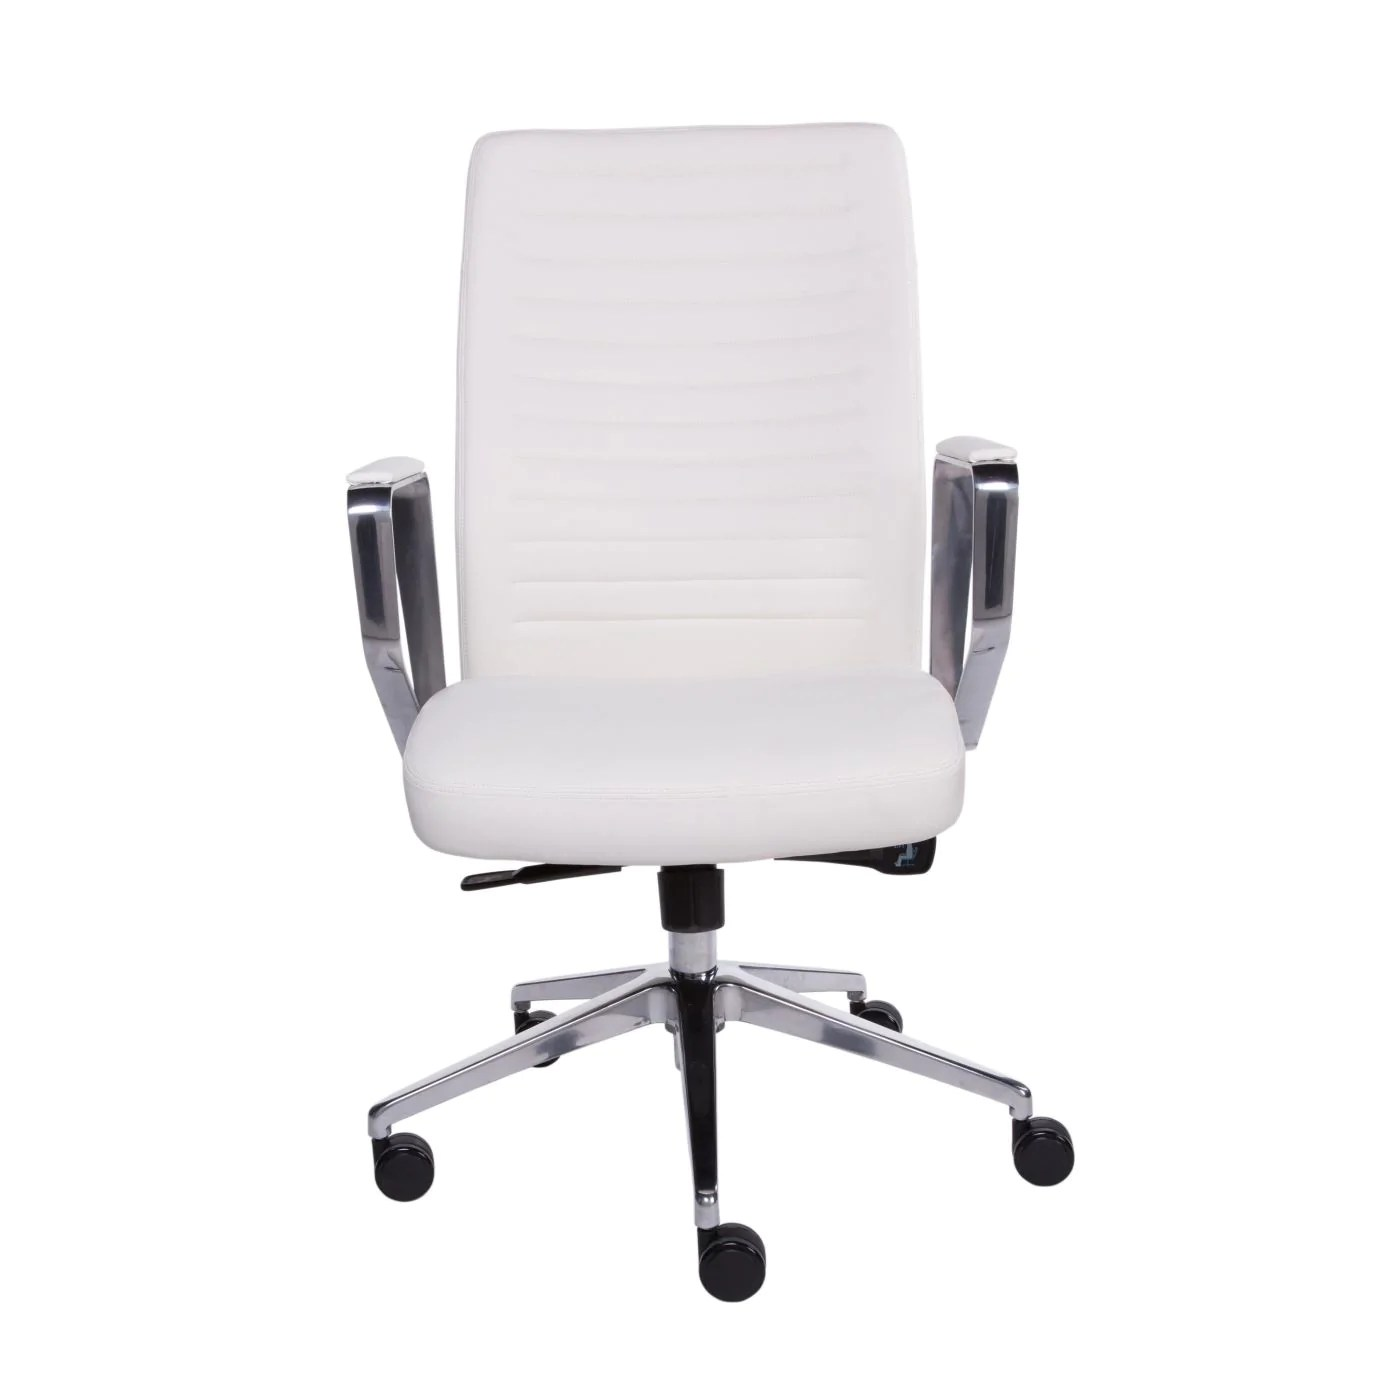 Low Back Office Chair Buy Euro Style Euro 90431wht Emory Low Back Office Chair In White And Polished Aluminum At Contemporary Furniture Warehouse